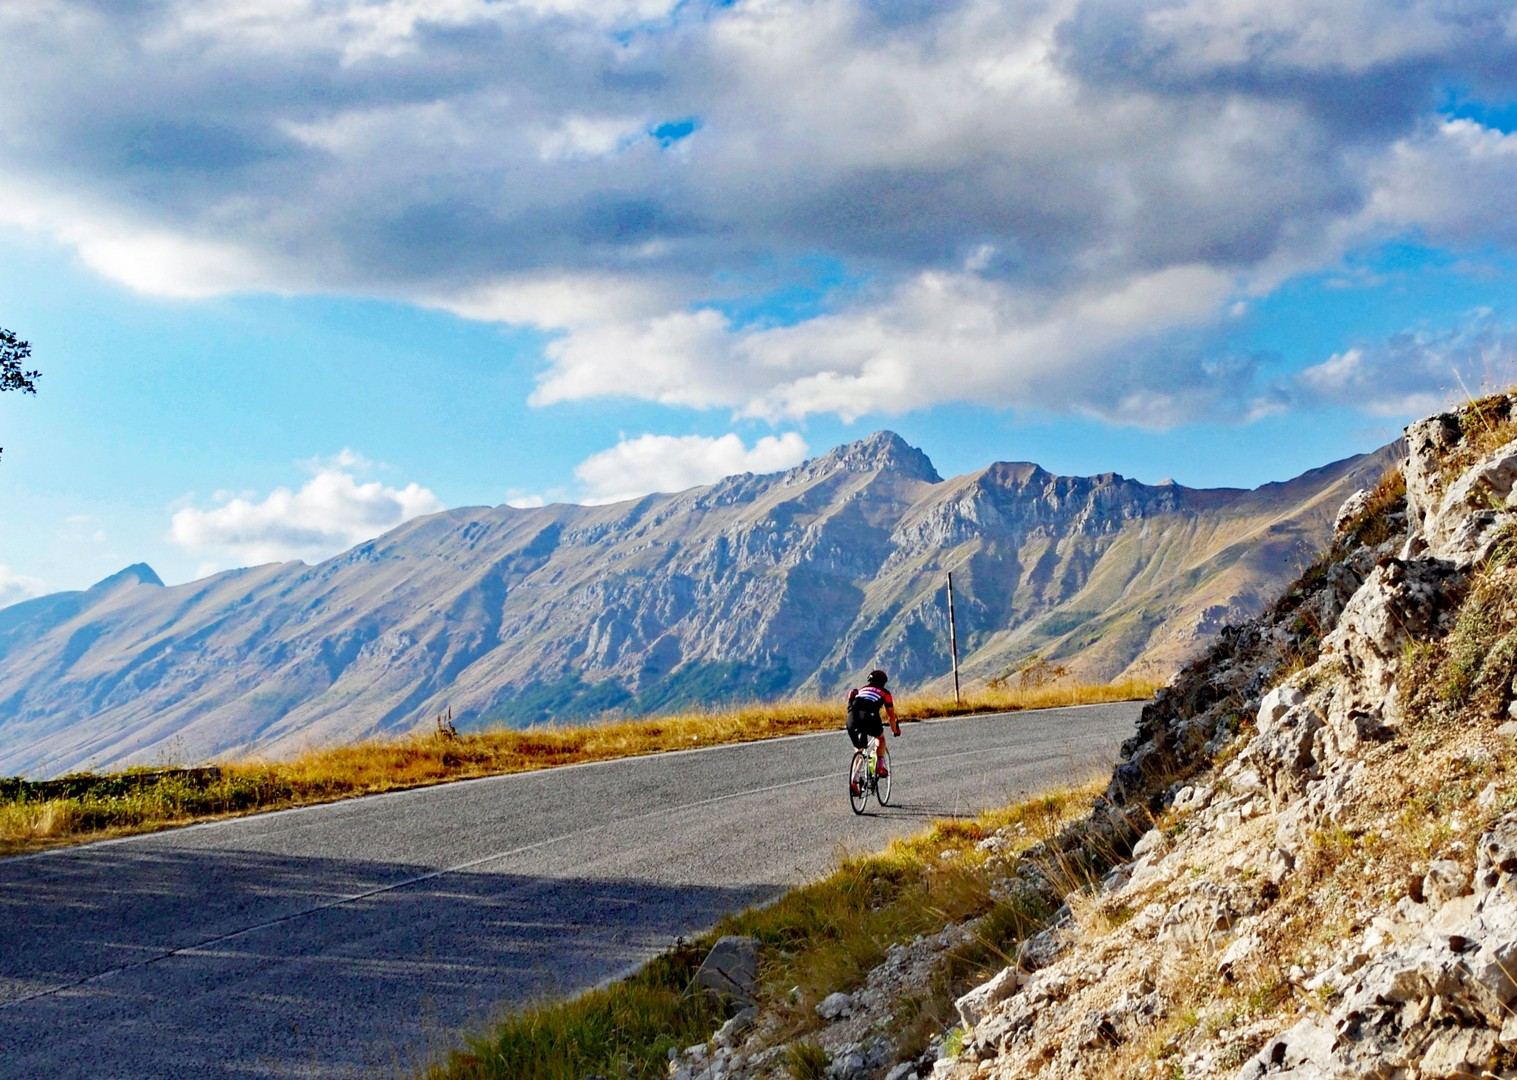 south-to-north-guided-road-cycling-holiday-grand-traverse.jpg - Italy - Grand Traverse - South to North (22 days) - Guided Road Cycling Holiday - Road Cycling